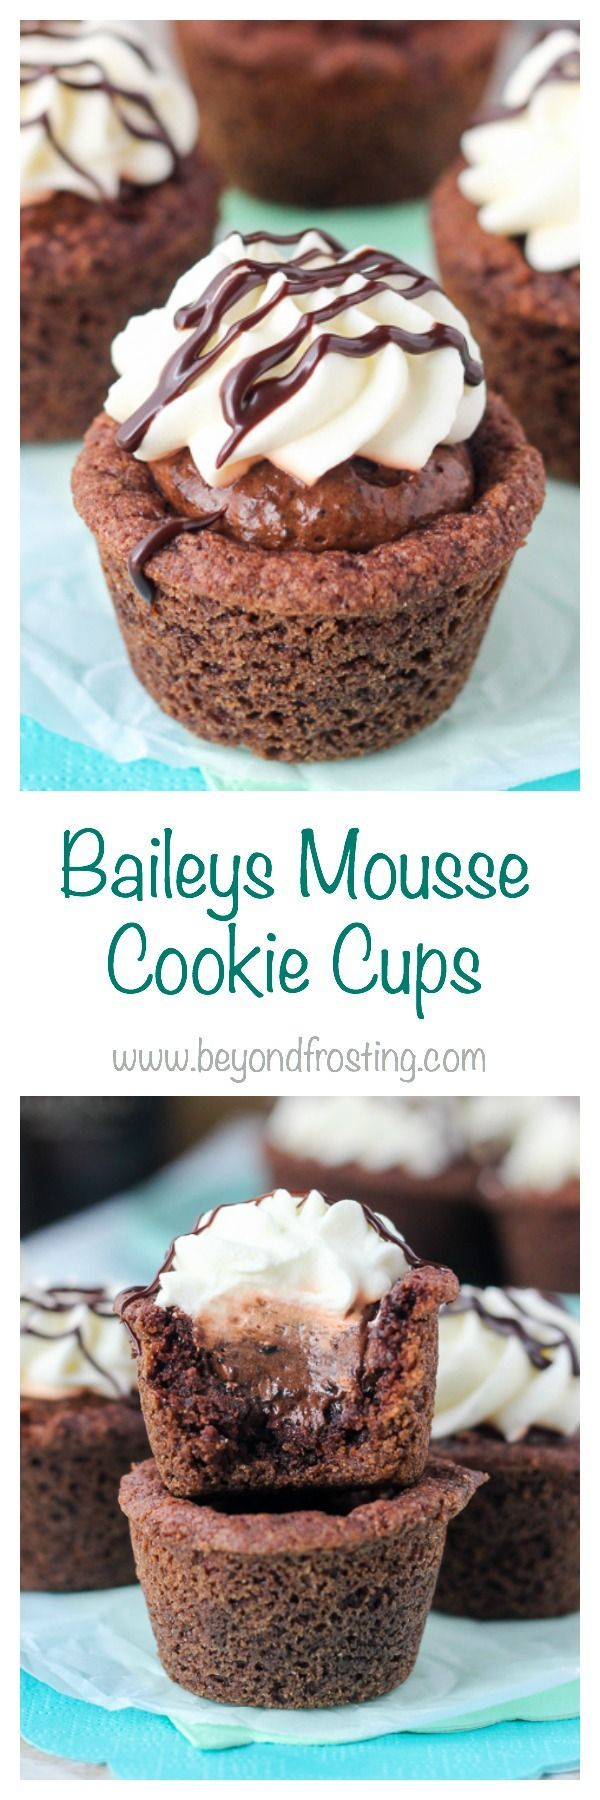 Baileys Mousse Cookie Cups